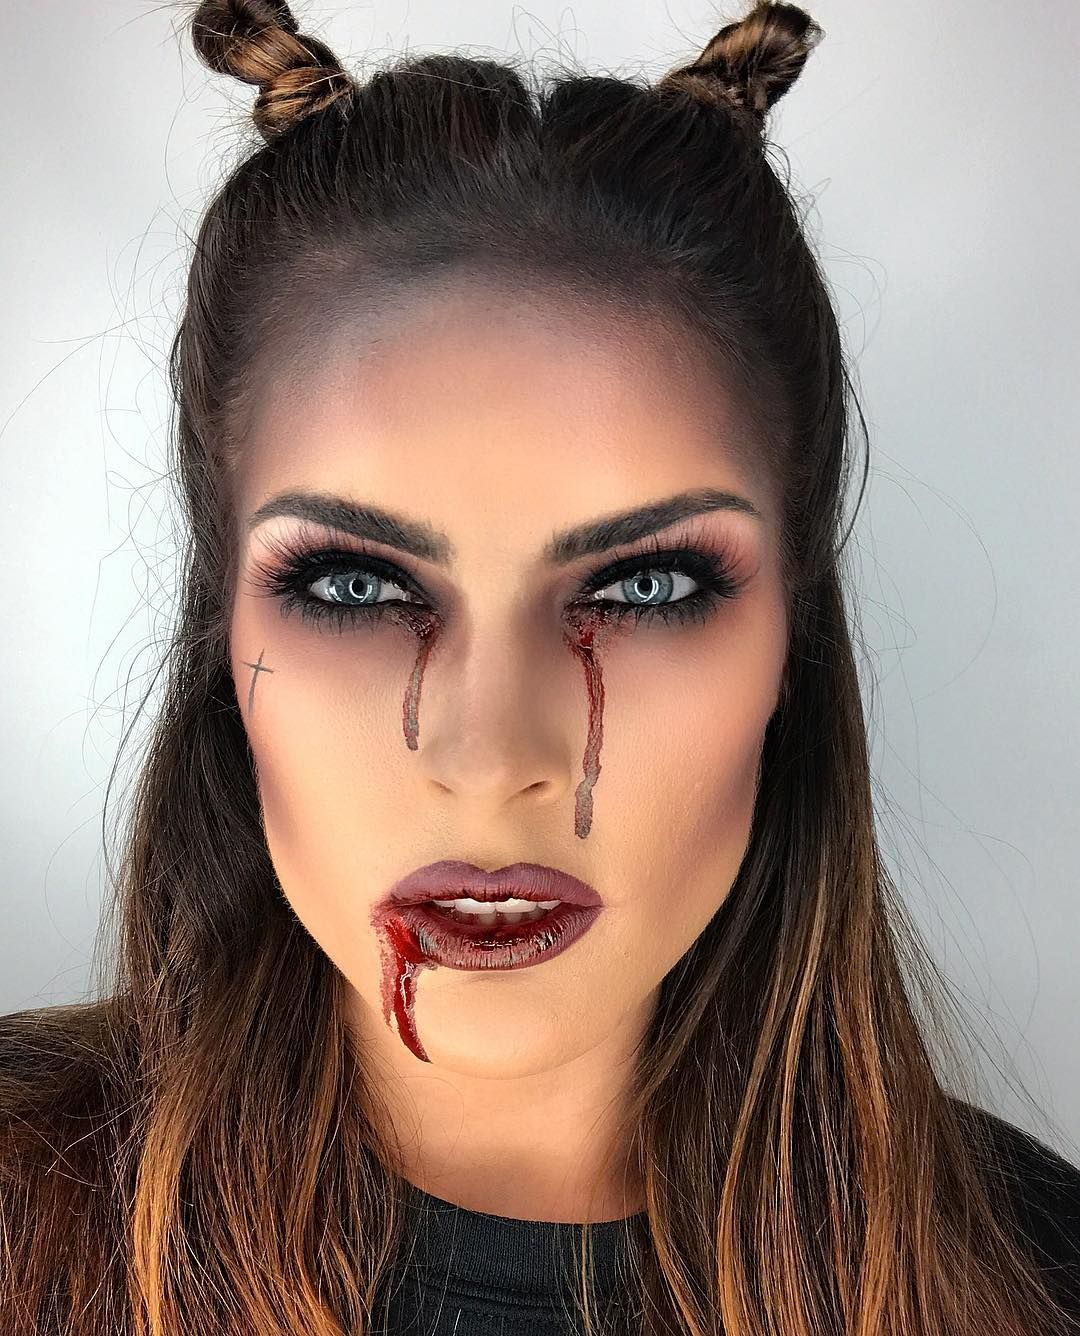 10 Devilish Halloween Makeup Looks Even Beginners Can Pull